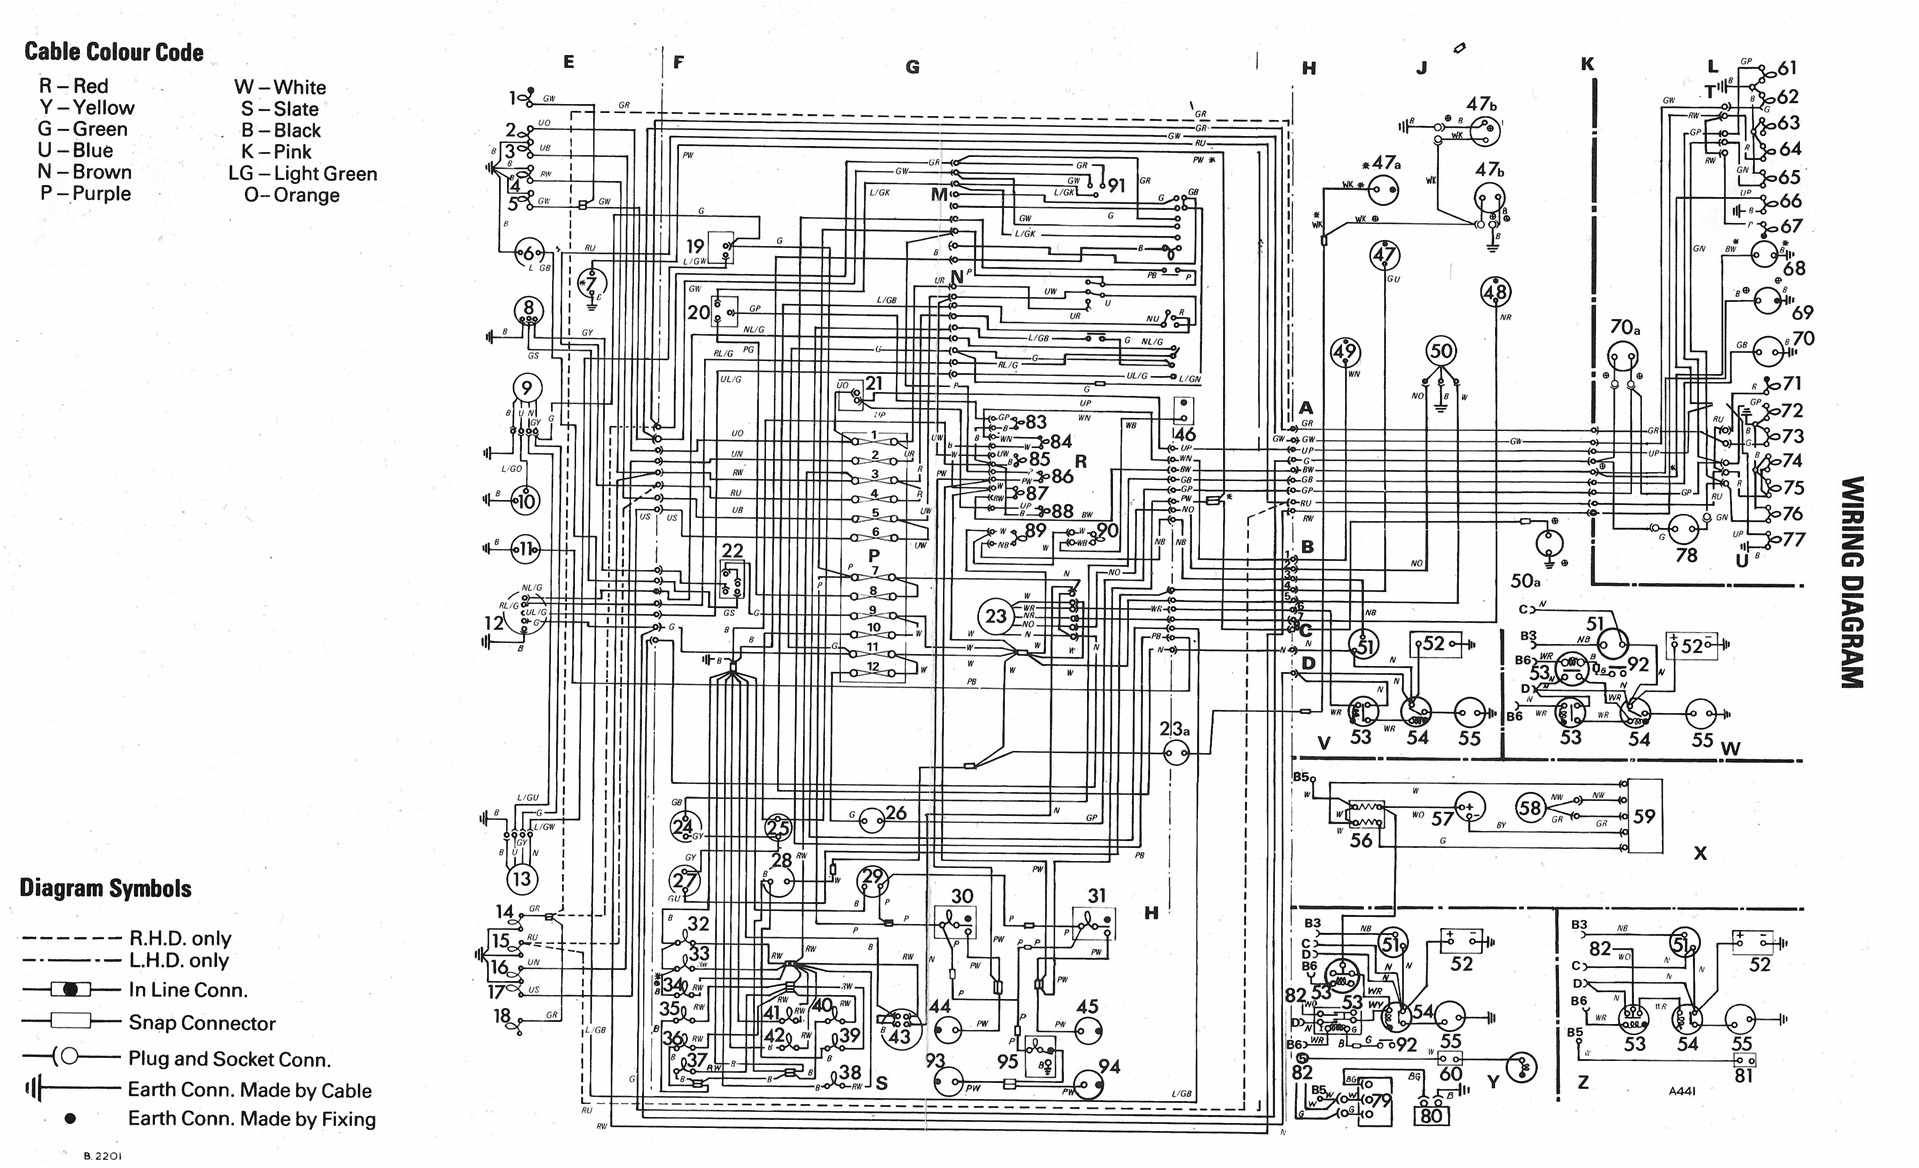 small resolution of vw golf wiring diagram wiring diagram name vw golf wiring diagram download vw bora wiring diagram download